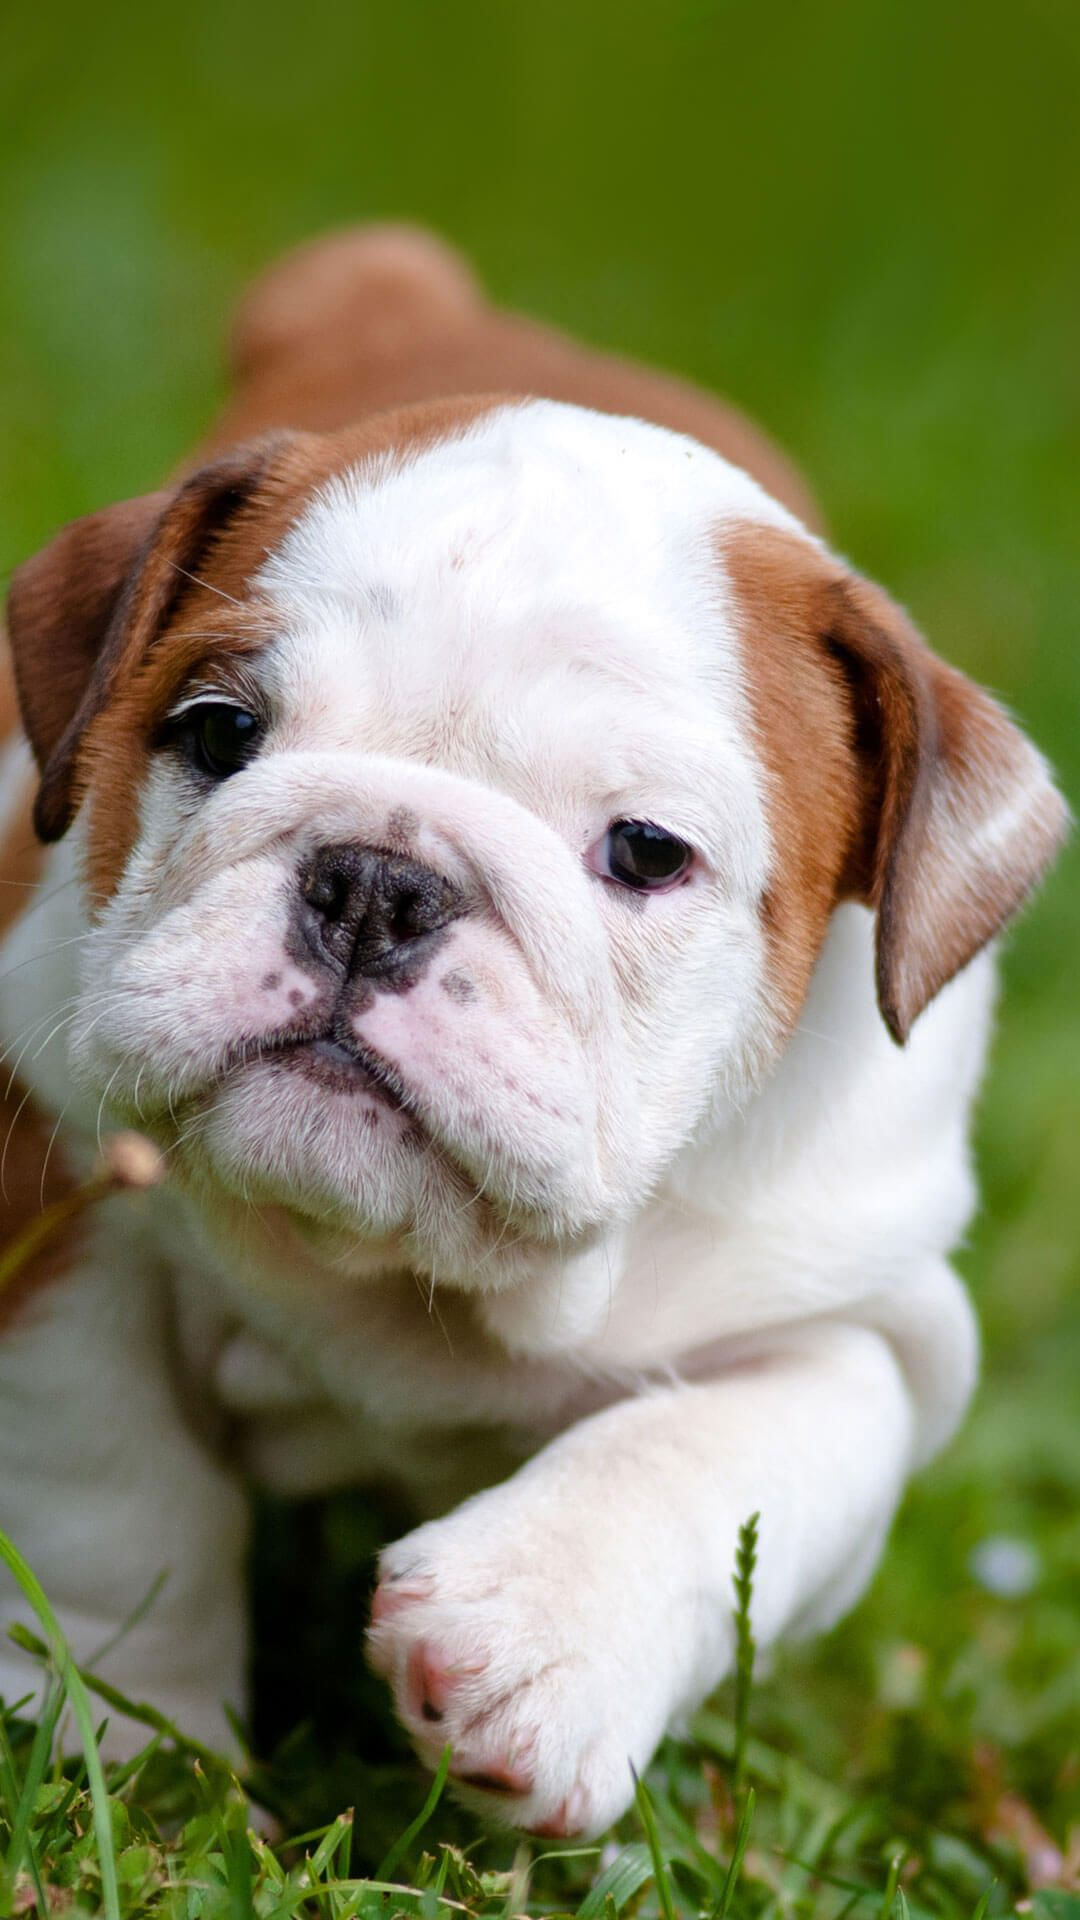 Cute English Bulldog Puppies Iphone Wallpaper Oboi Dlya Telefona Oboi